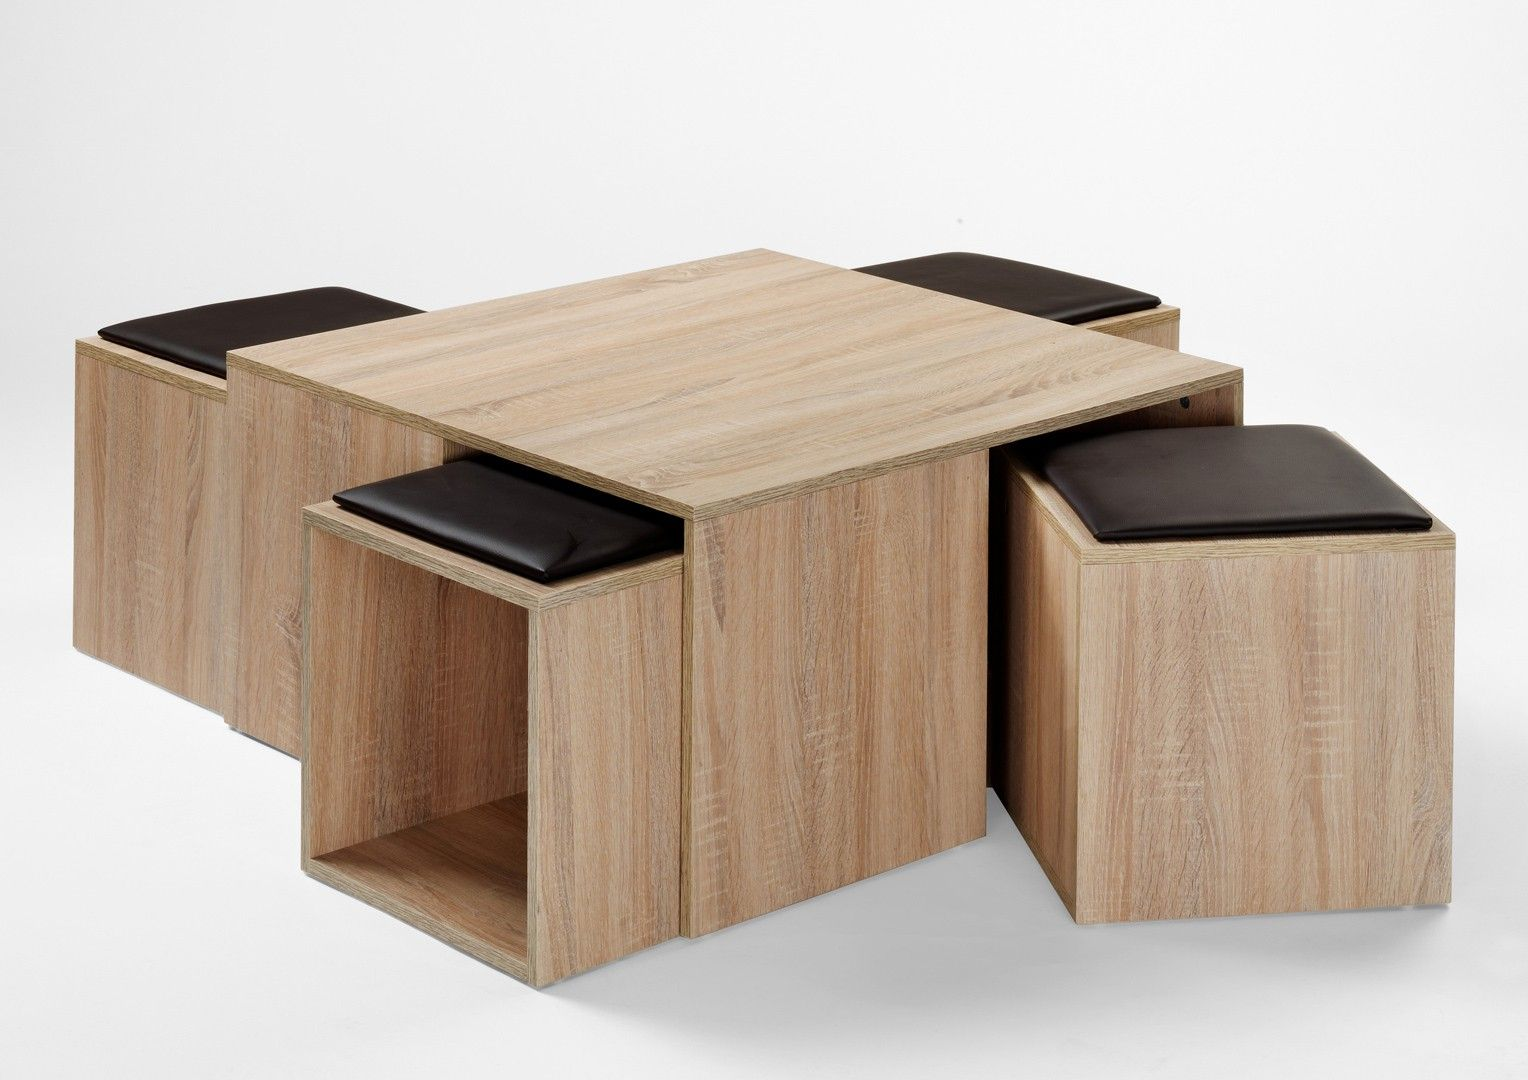 Table Basse Contemporaine Avec Poufs Chêne Nature Celaya Table